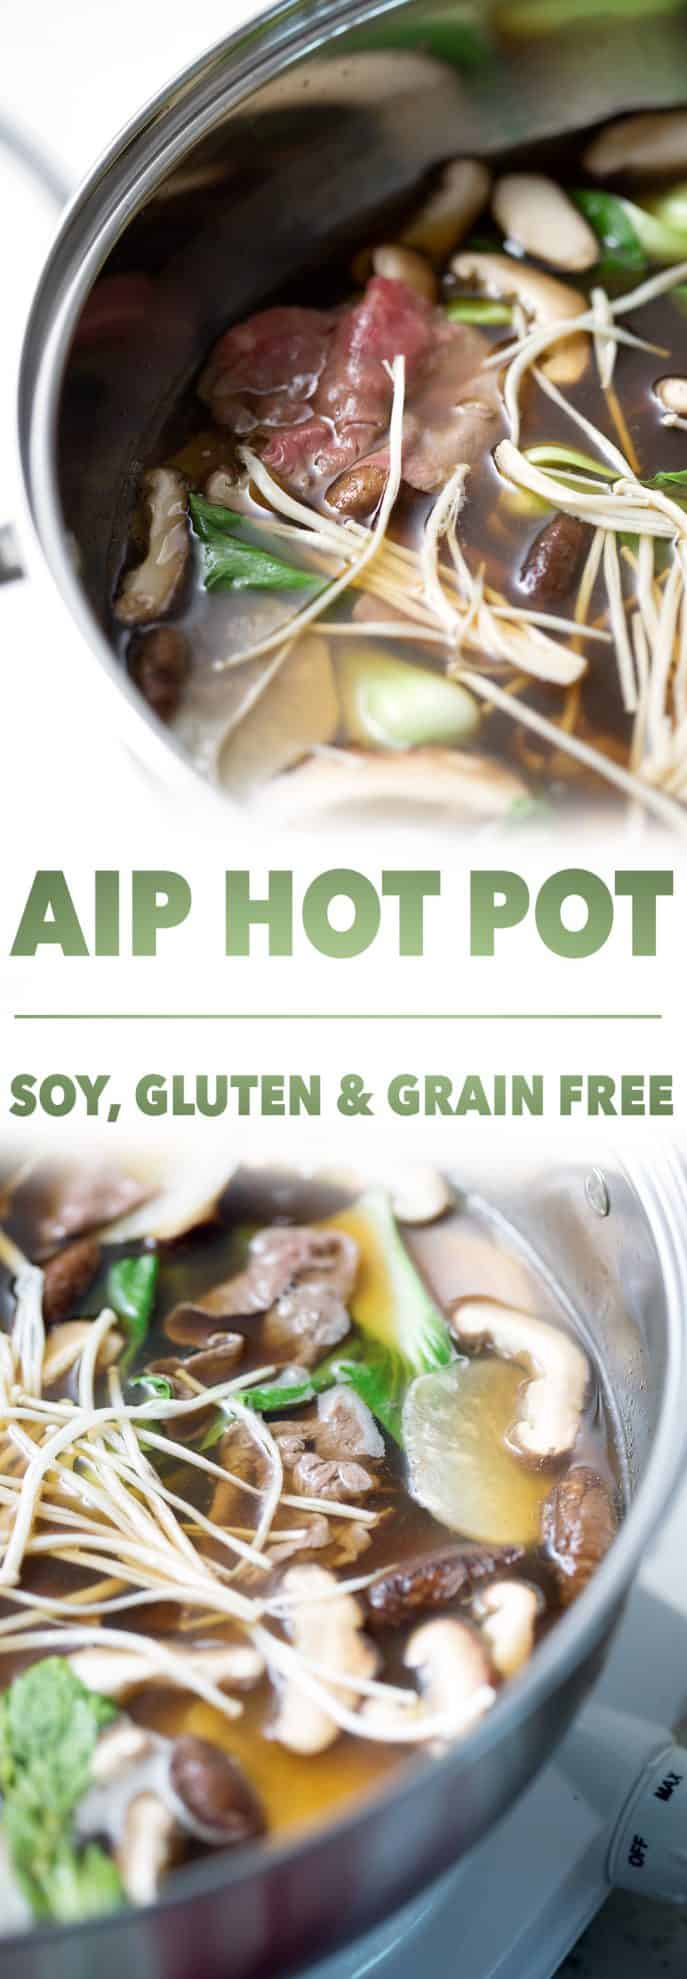 bowls of soup with the words sip hot pot and soy, gluten and grain free.